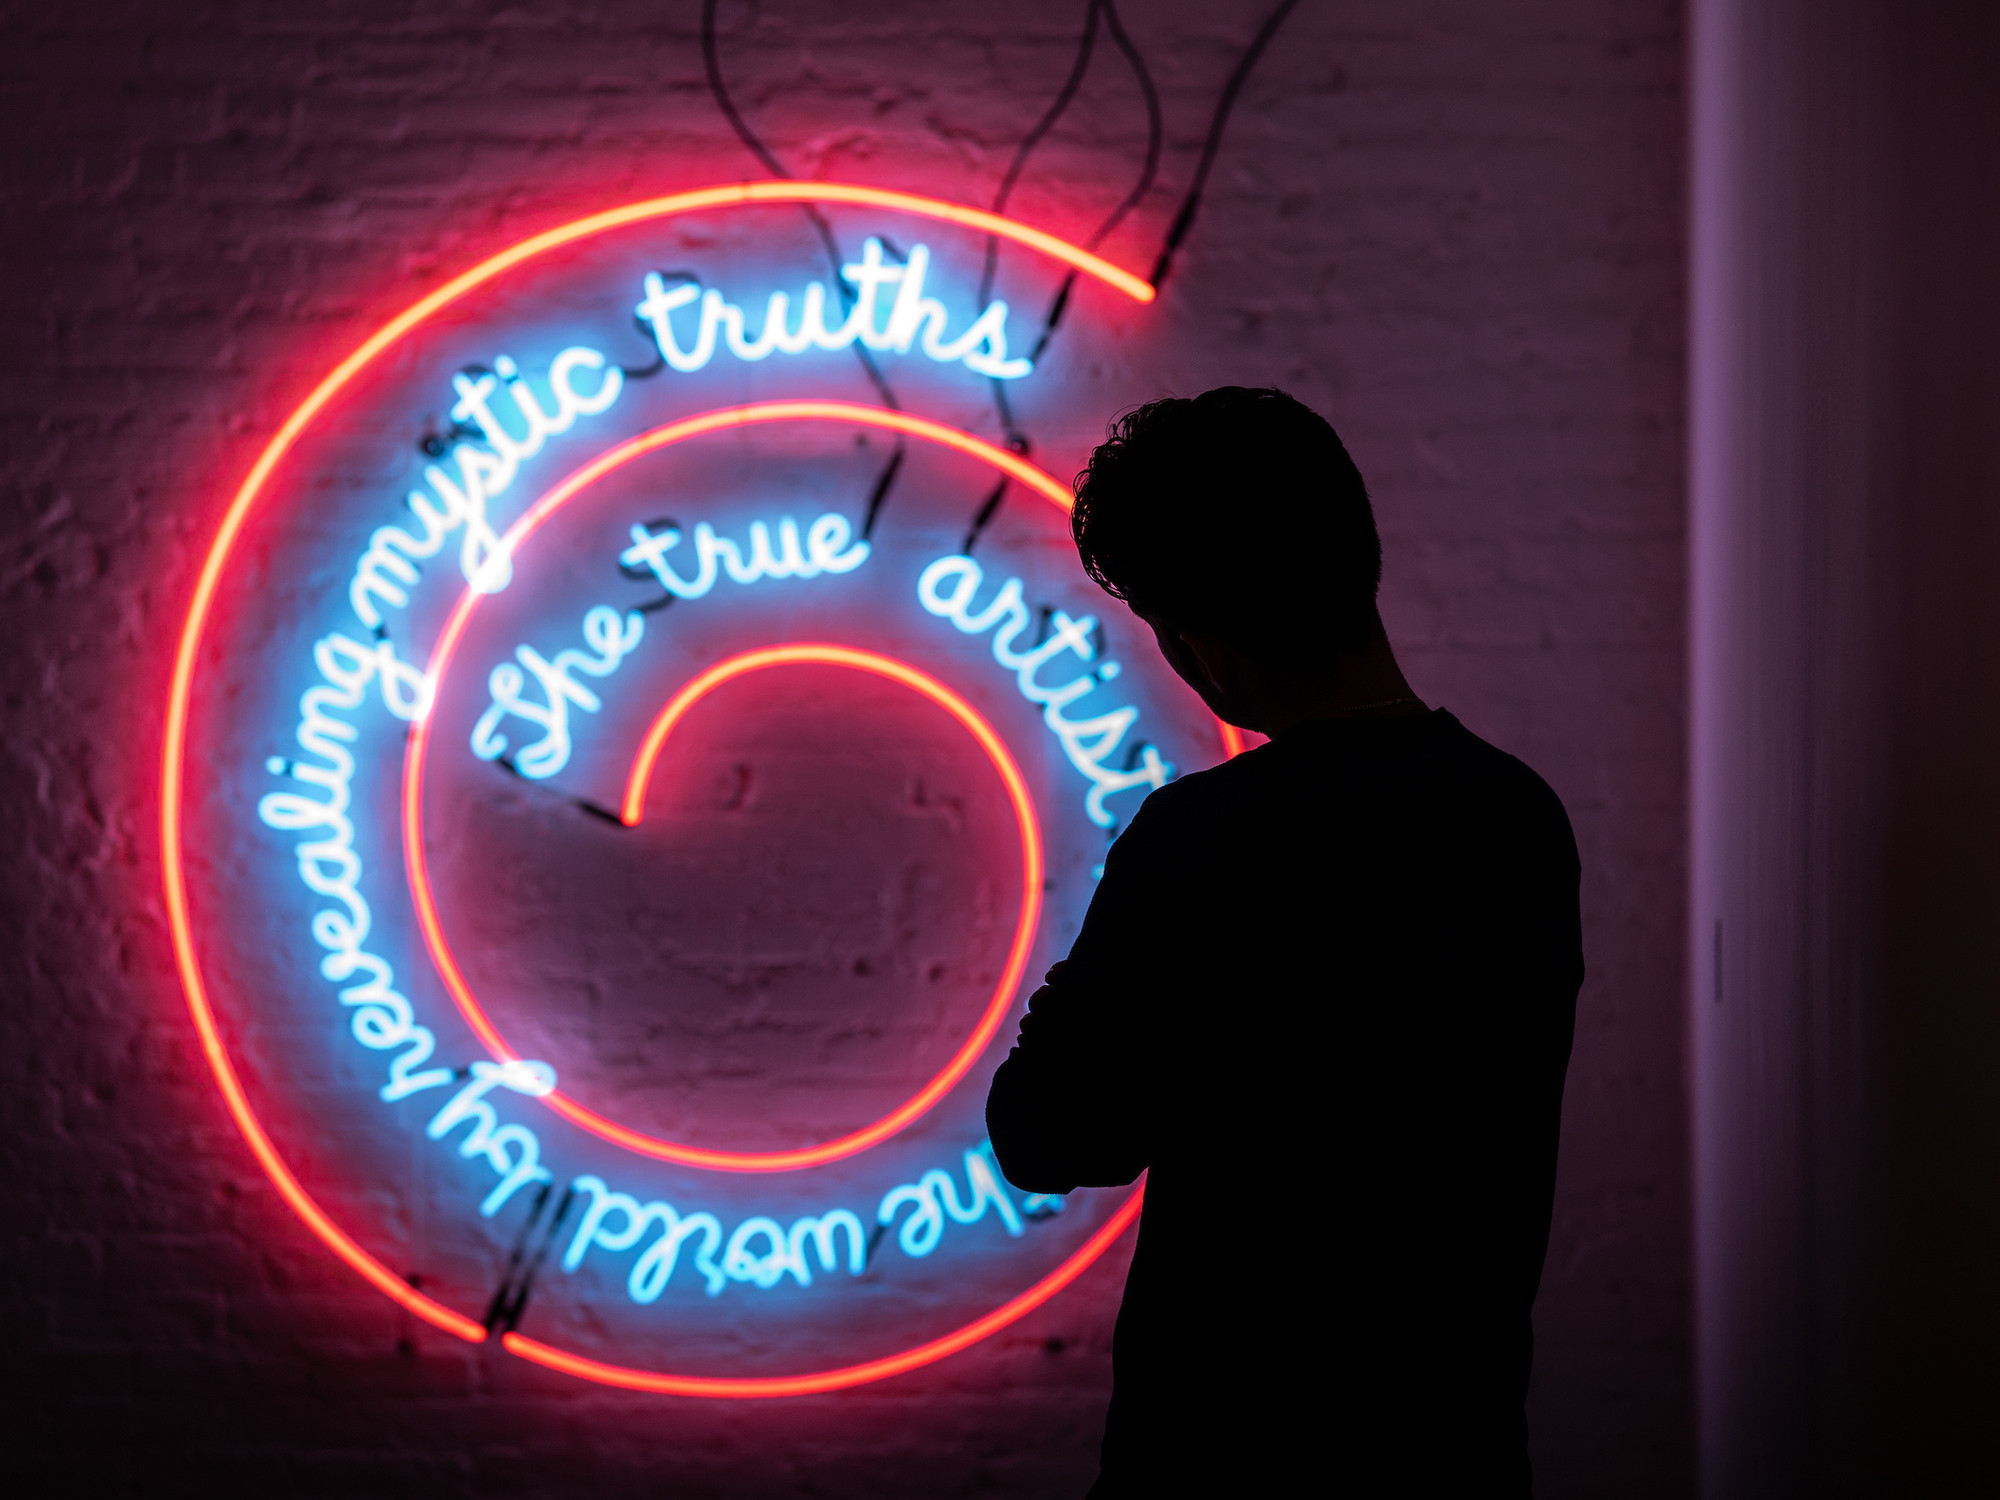 Installation view, Bruce Nauman: Disappearing Acts at MoMA PS1, New York (October 21, 2018–February 25, 2019, at MoMA and MoMA PS1). © 2018 Bruce Nauman/Artists Rights Society (ARS), New York. Digital image © 2018 The Museum of Modern Art, New York. Photo: Walter Wlodarczyk